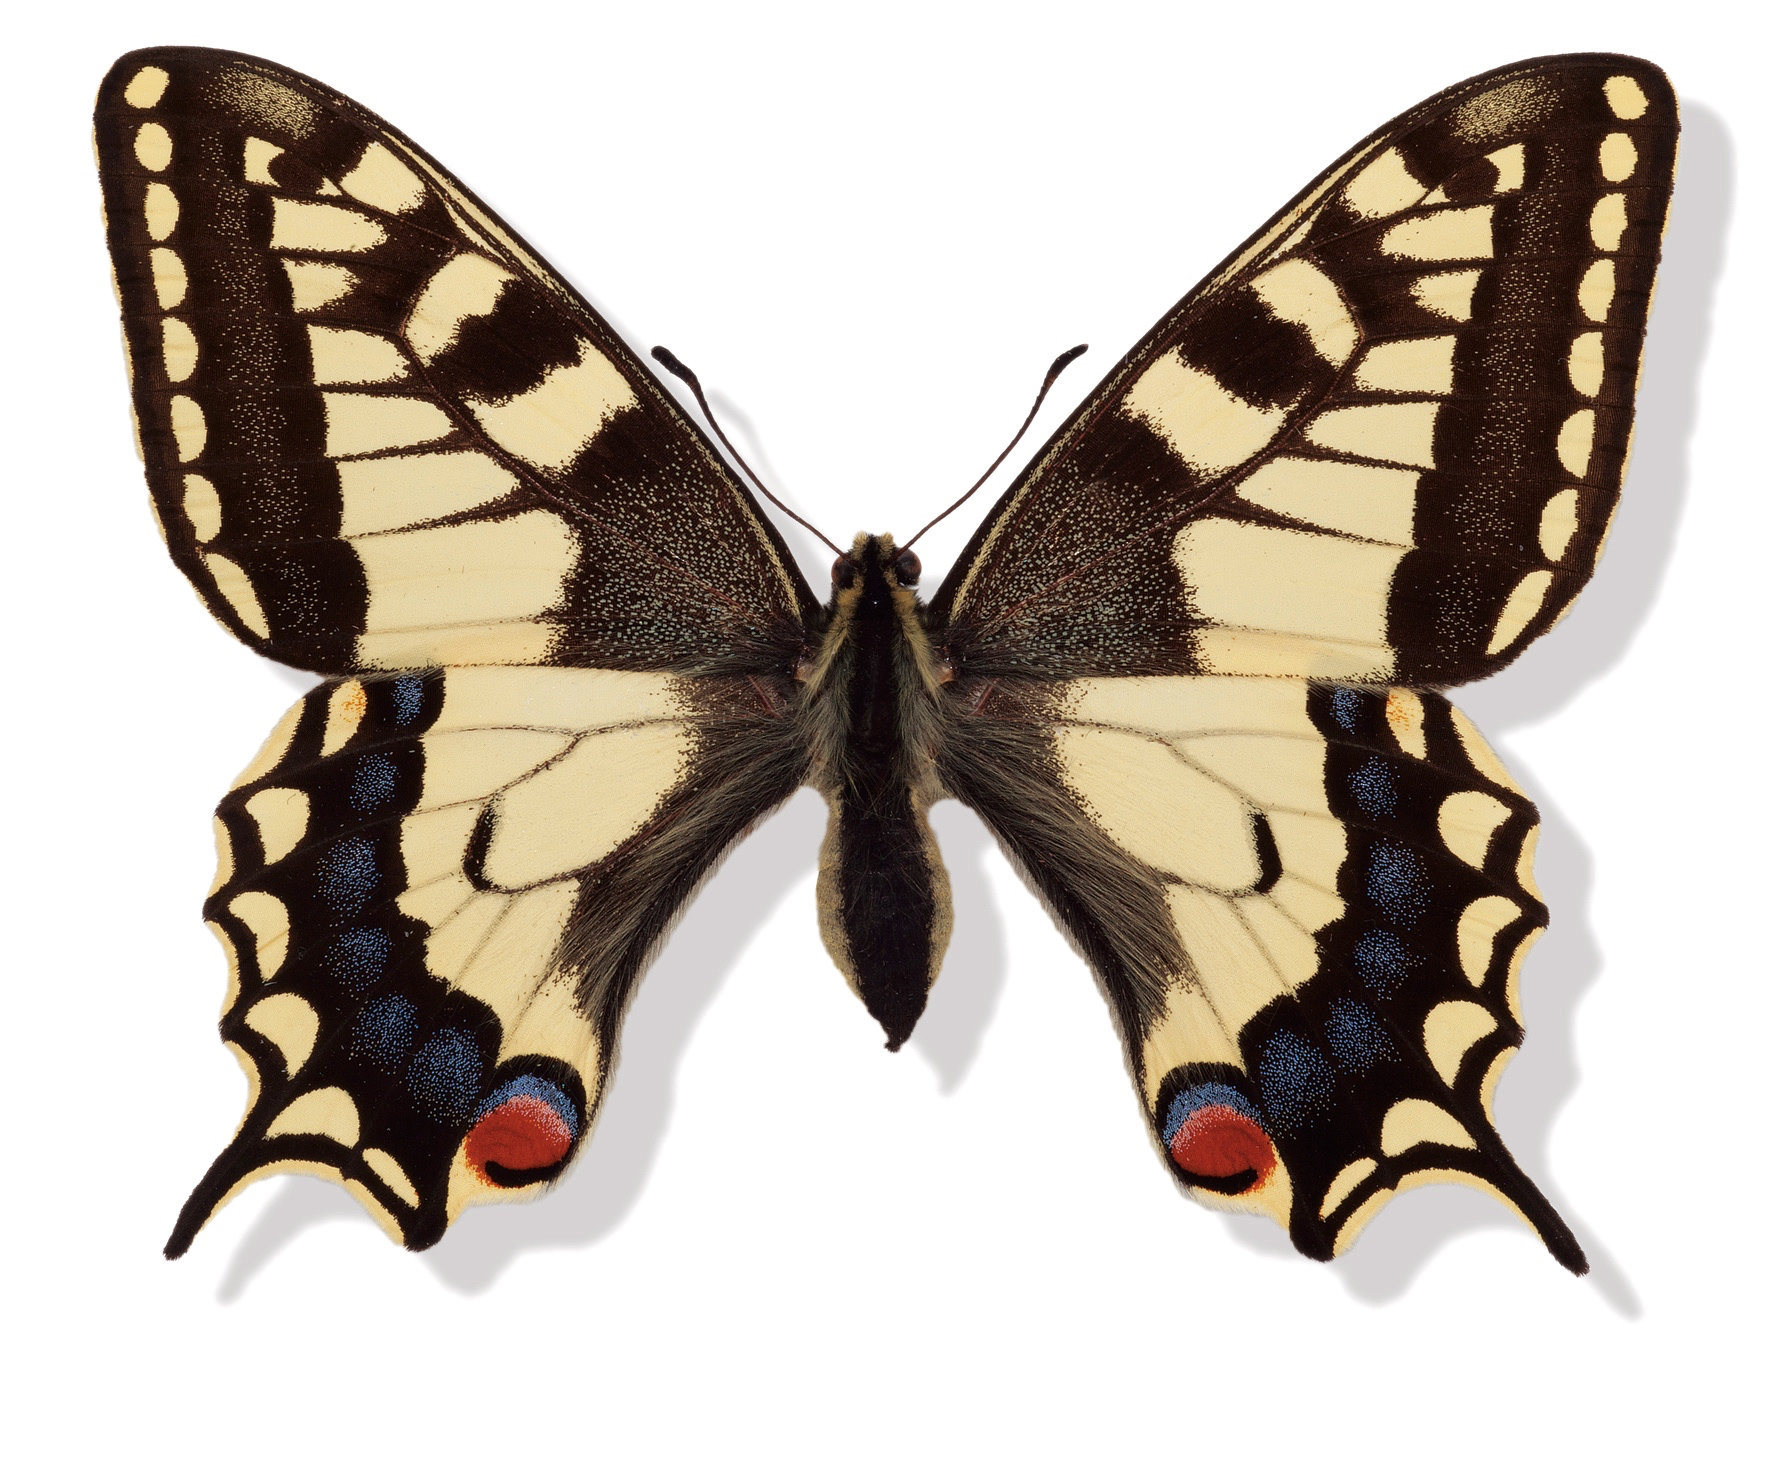 Svalehale Papilio machaon